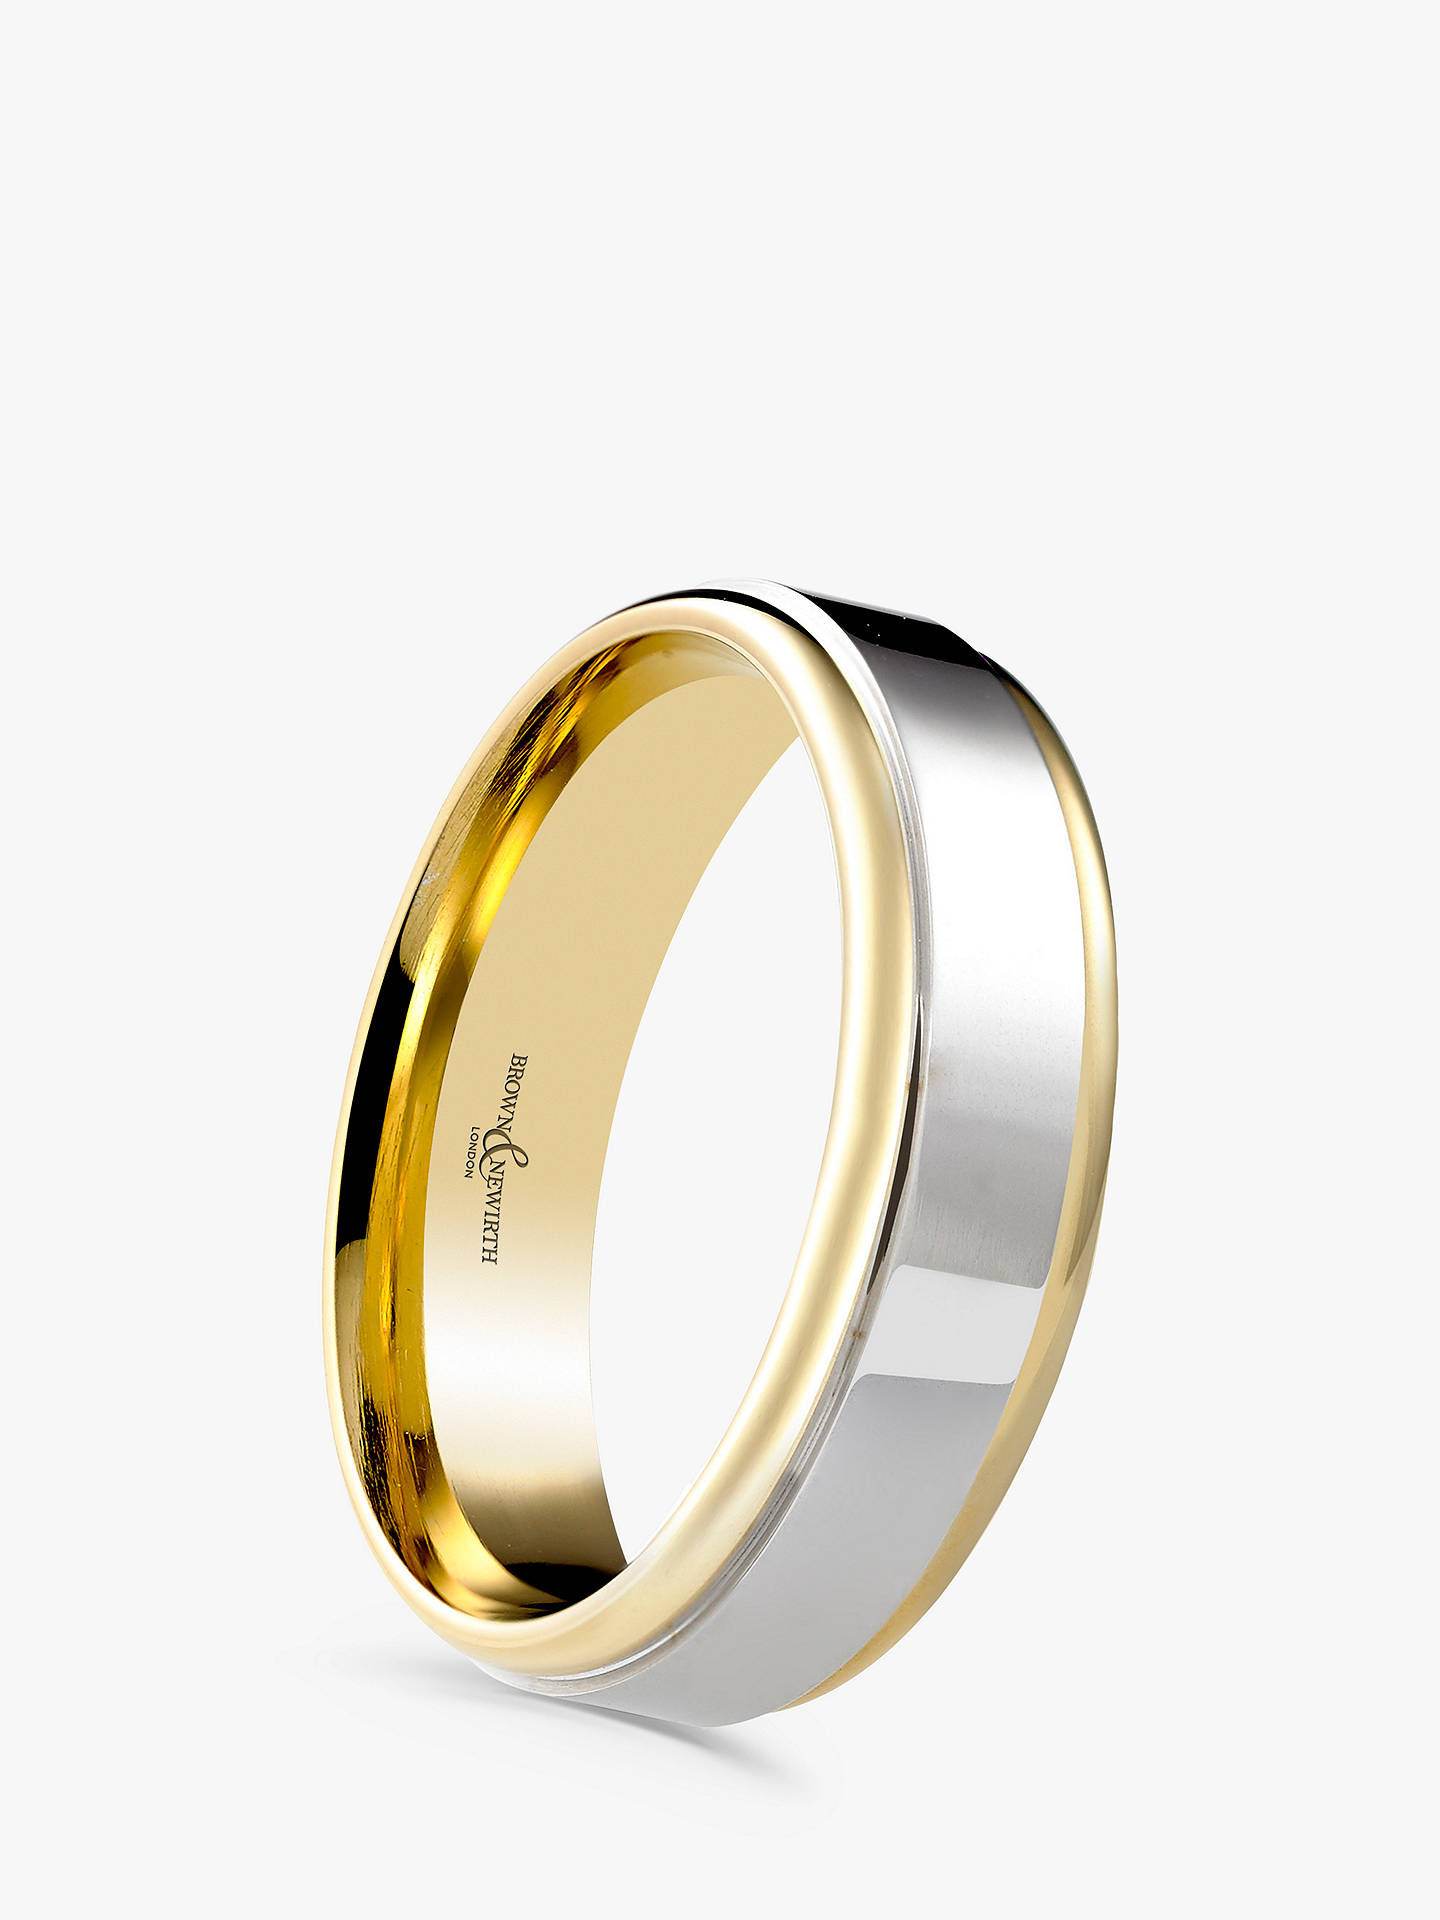 BuyBrown & Newirth Men's 9ct Yellow Gold and Palladium 6mm Polished Wedding Ring Online at johnlewis.com